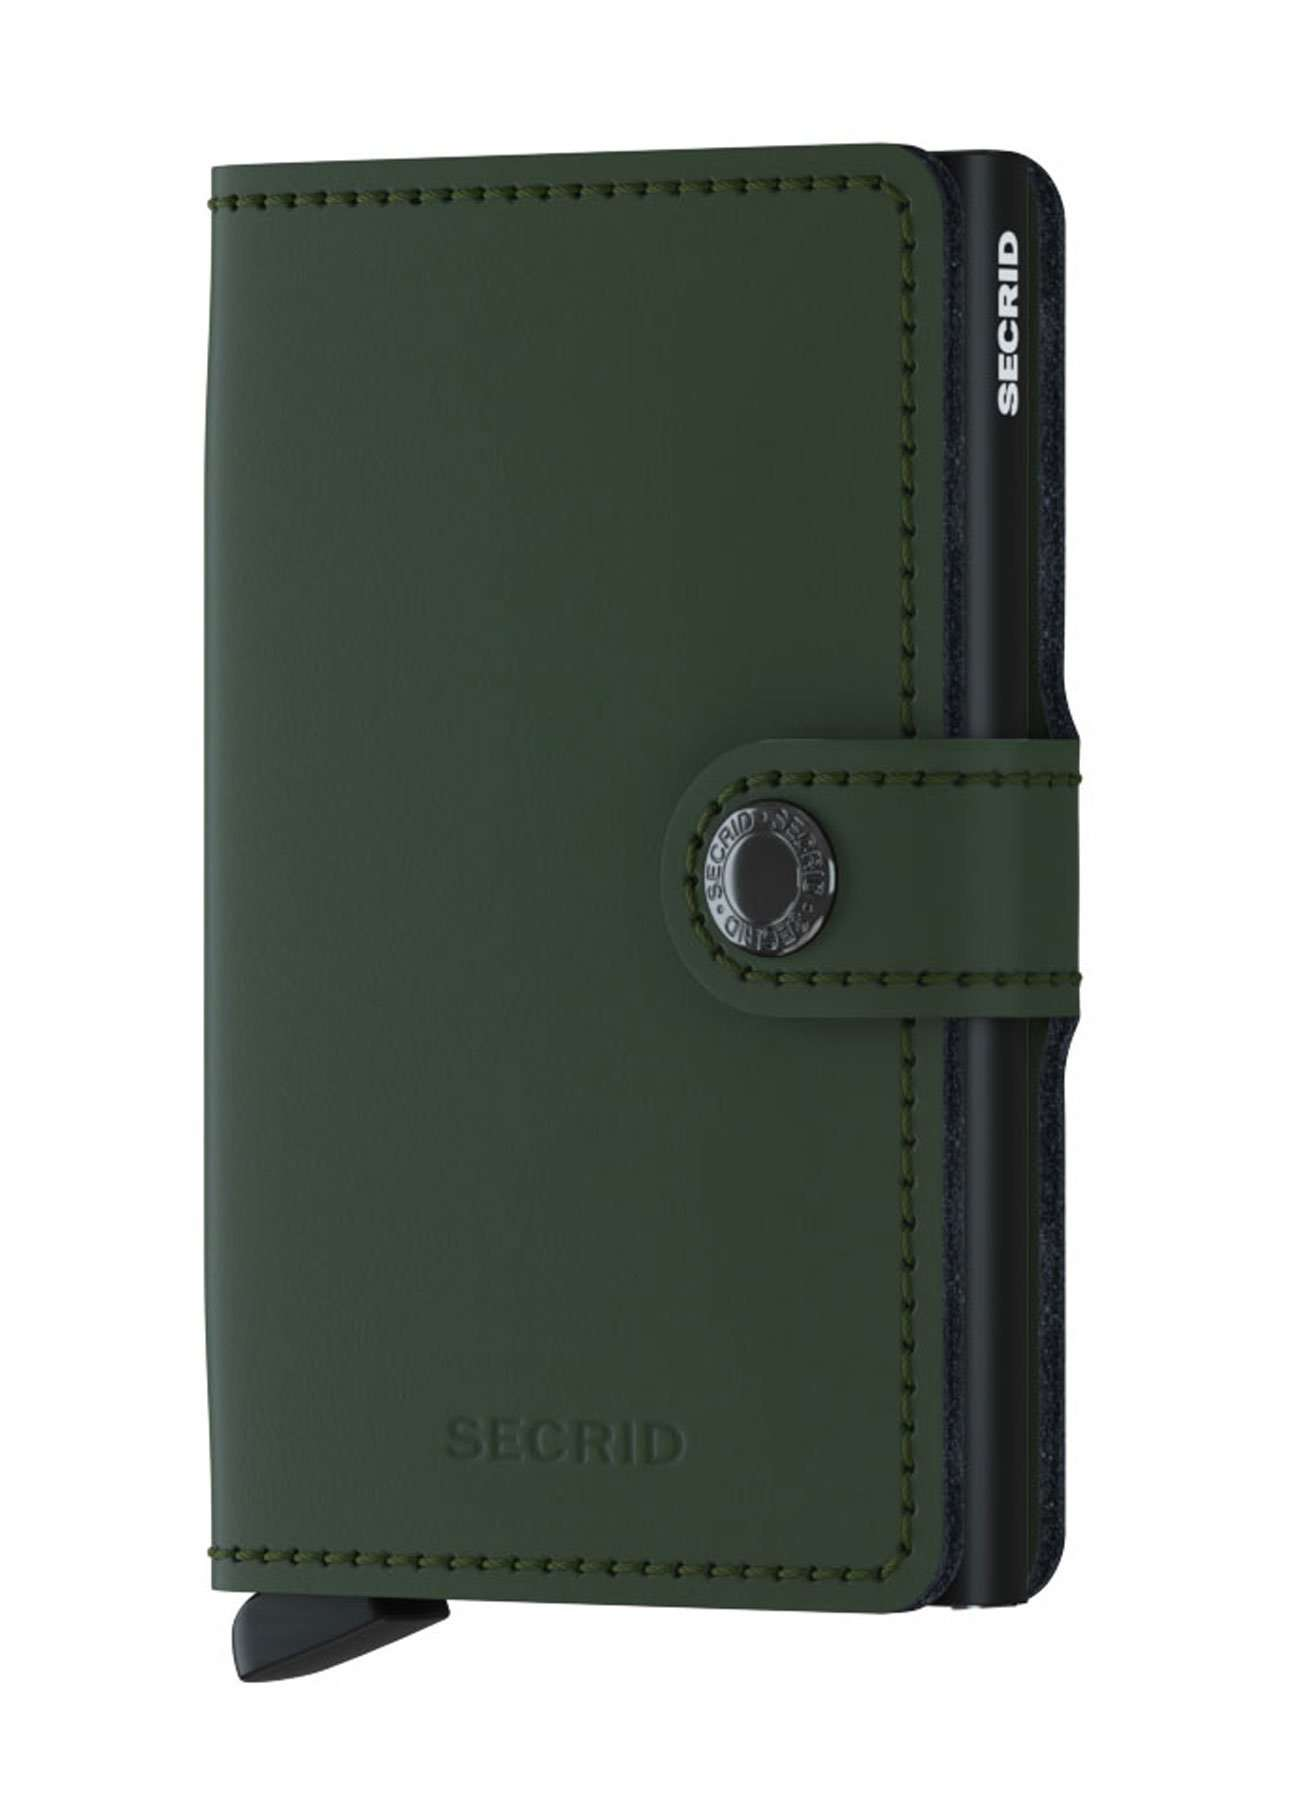 Secrid Wallet Mini Wallet Matte